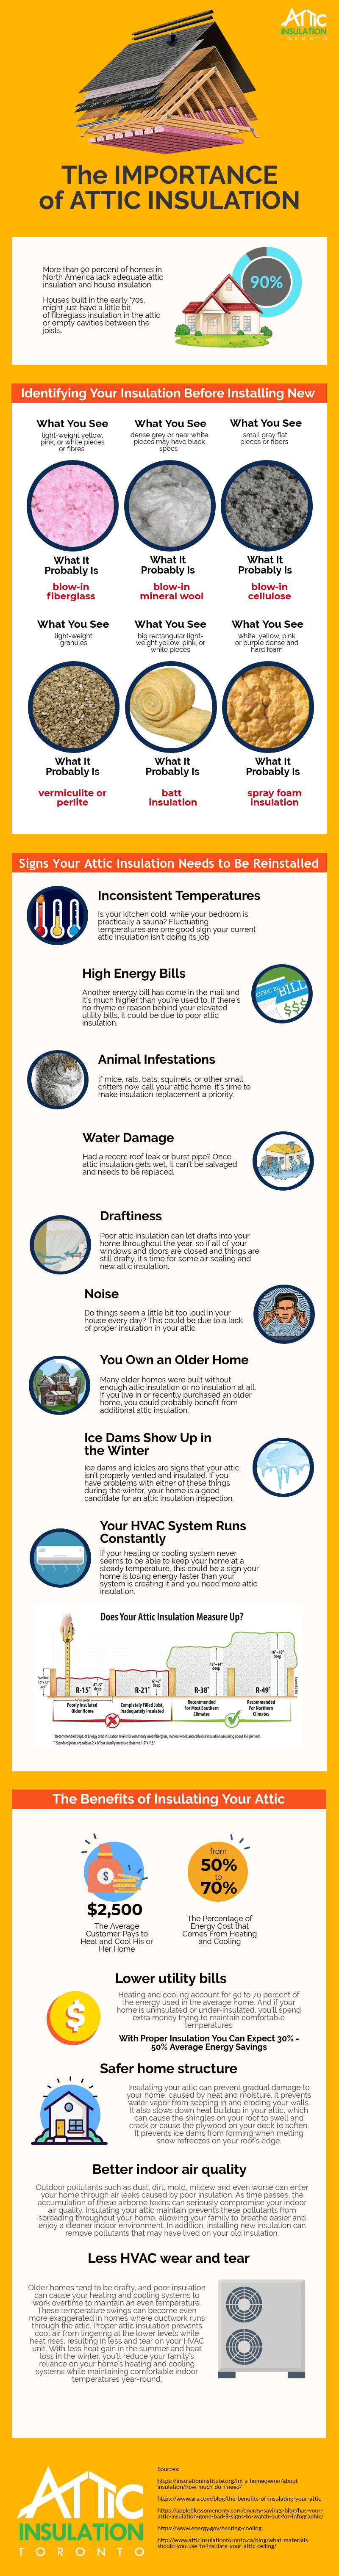 The Importance of Attic Insulation #infographic